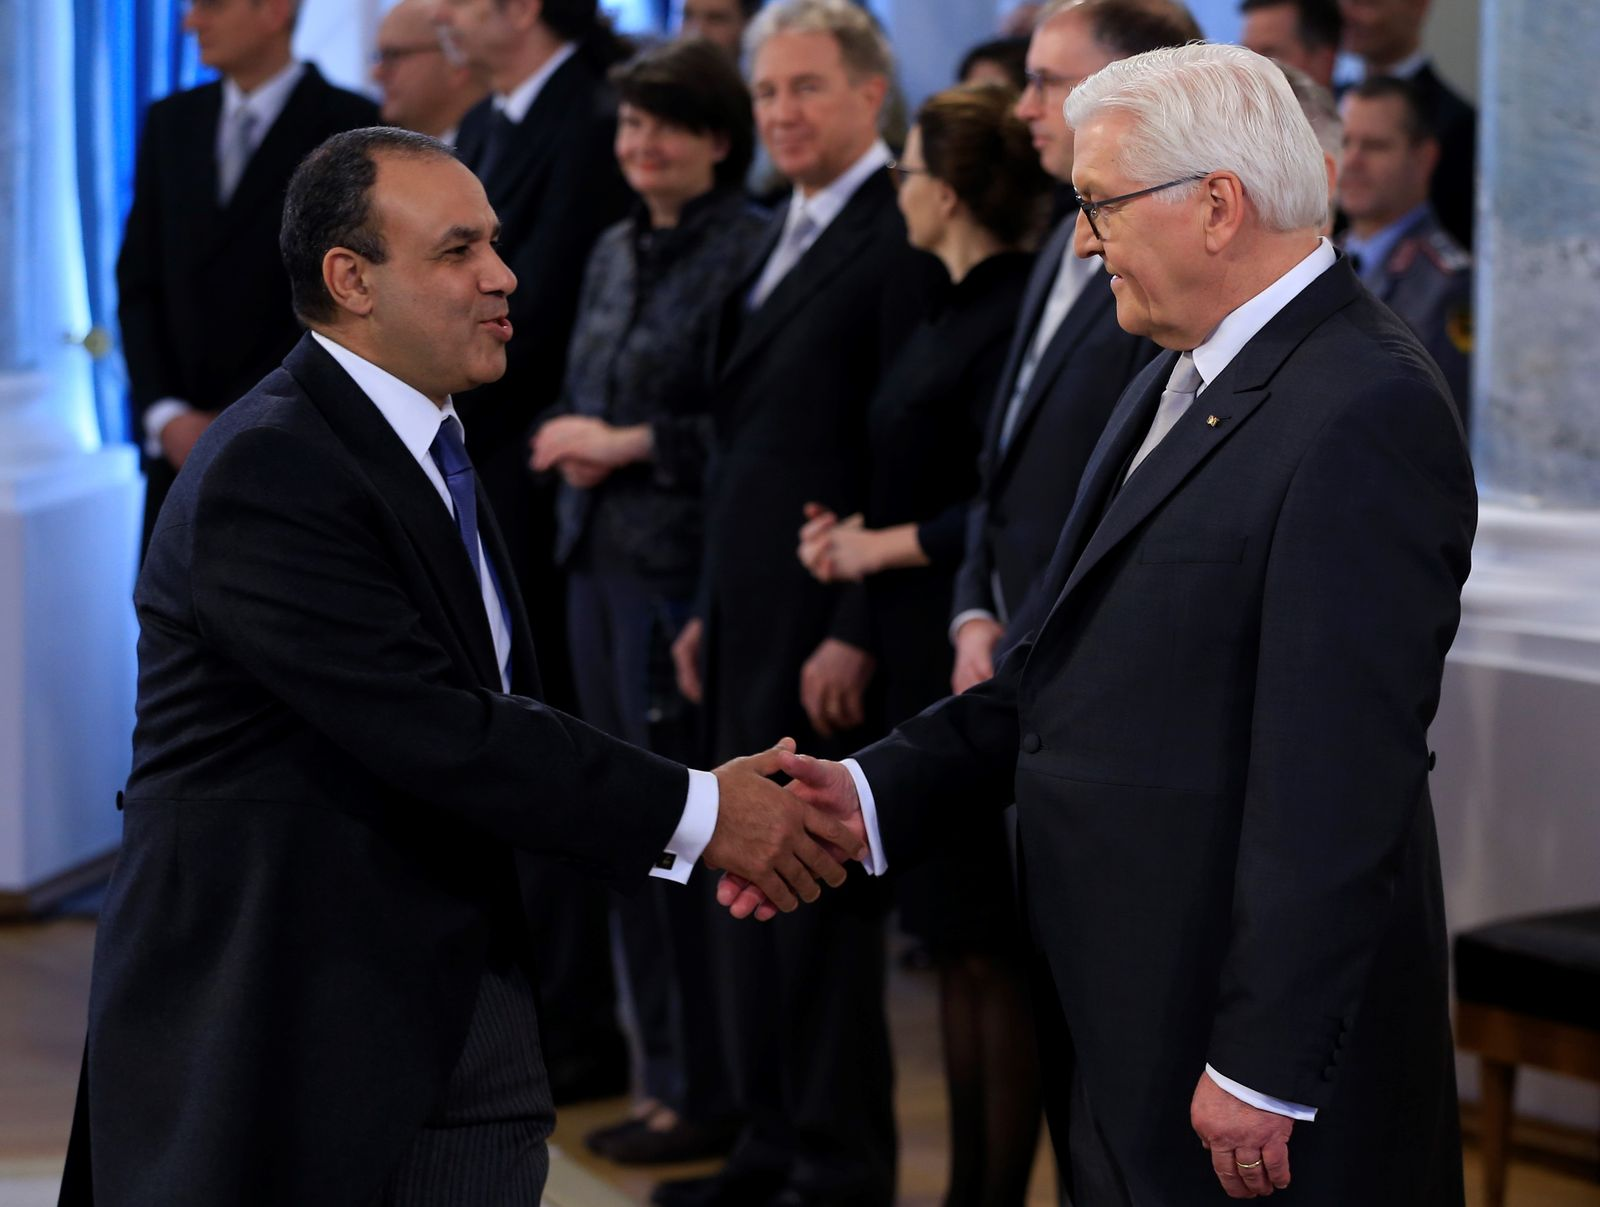 New Year reception by German President Frank-Walter Steinmeier